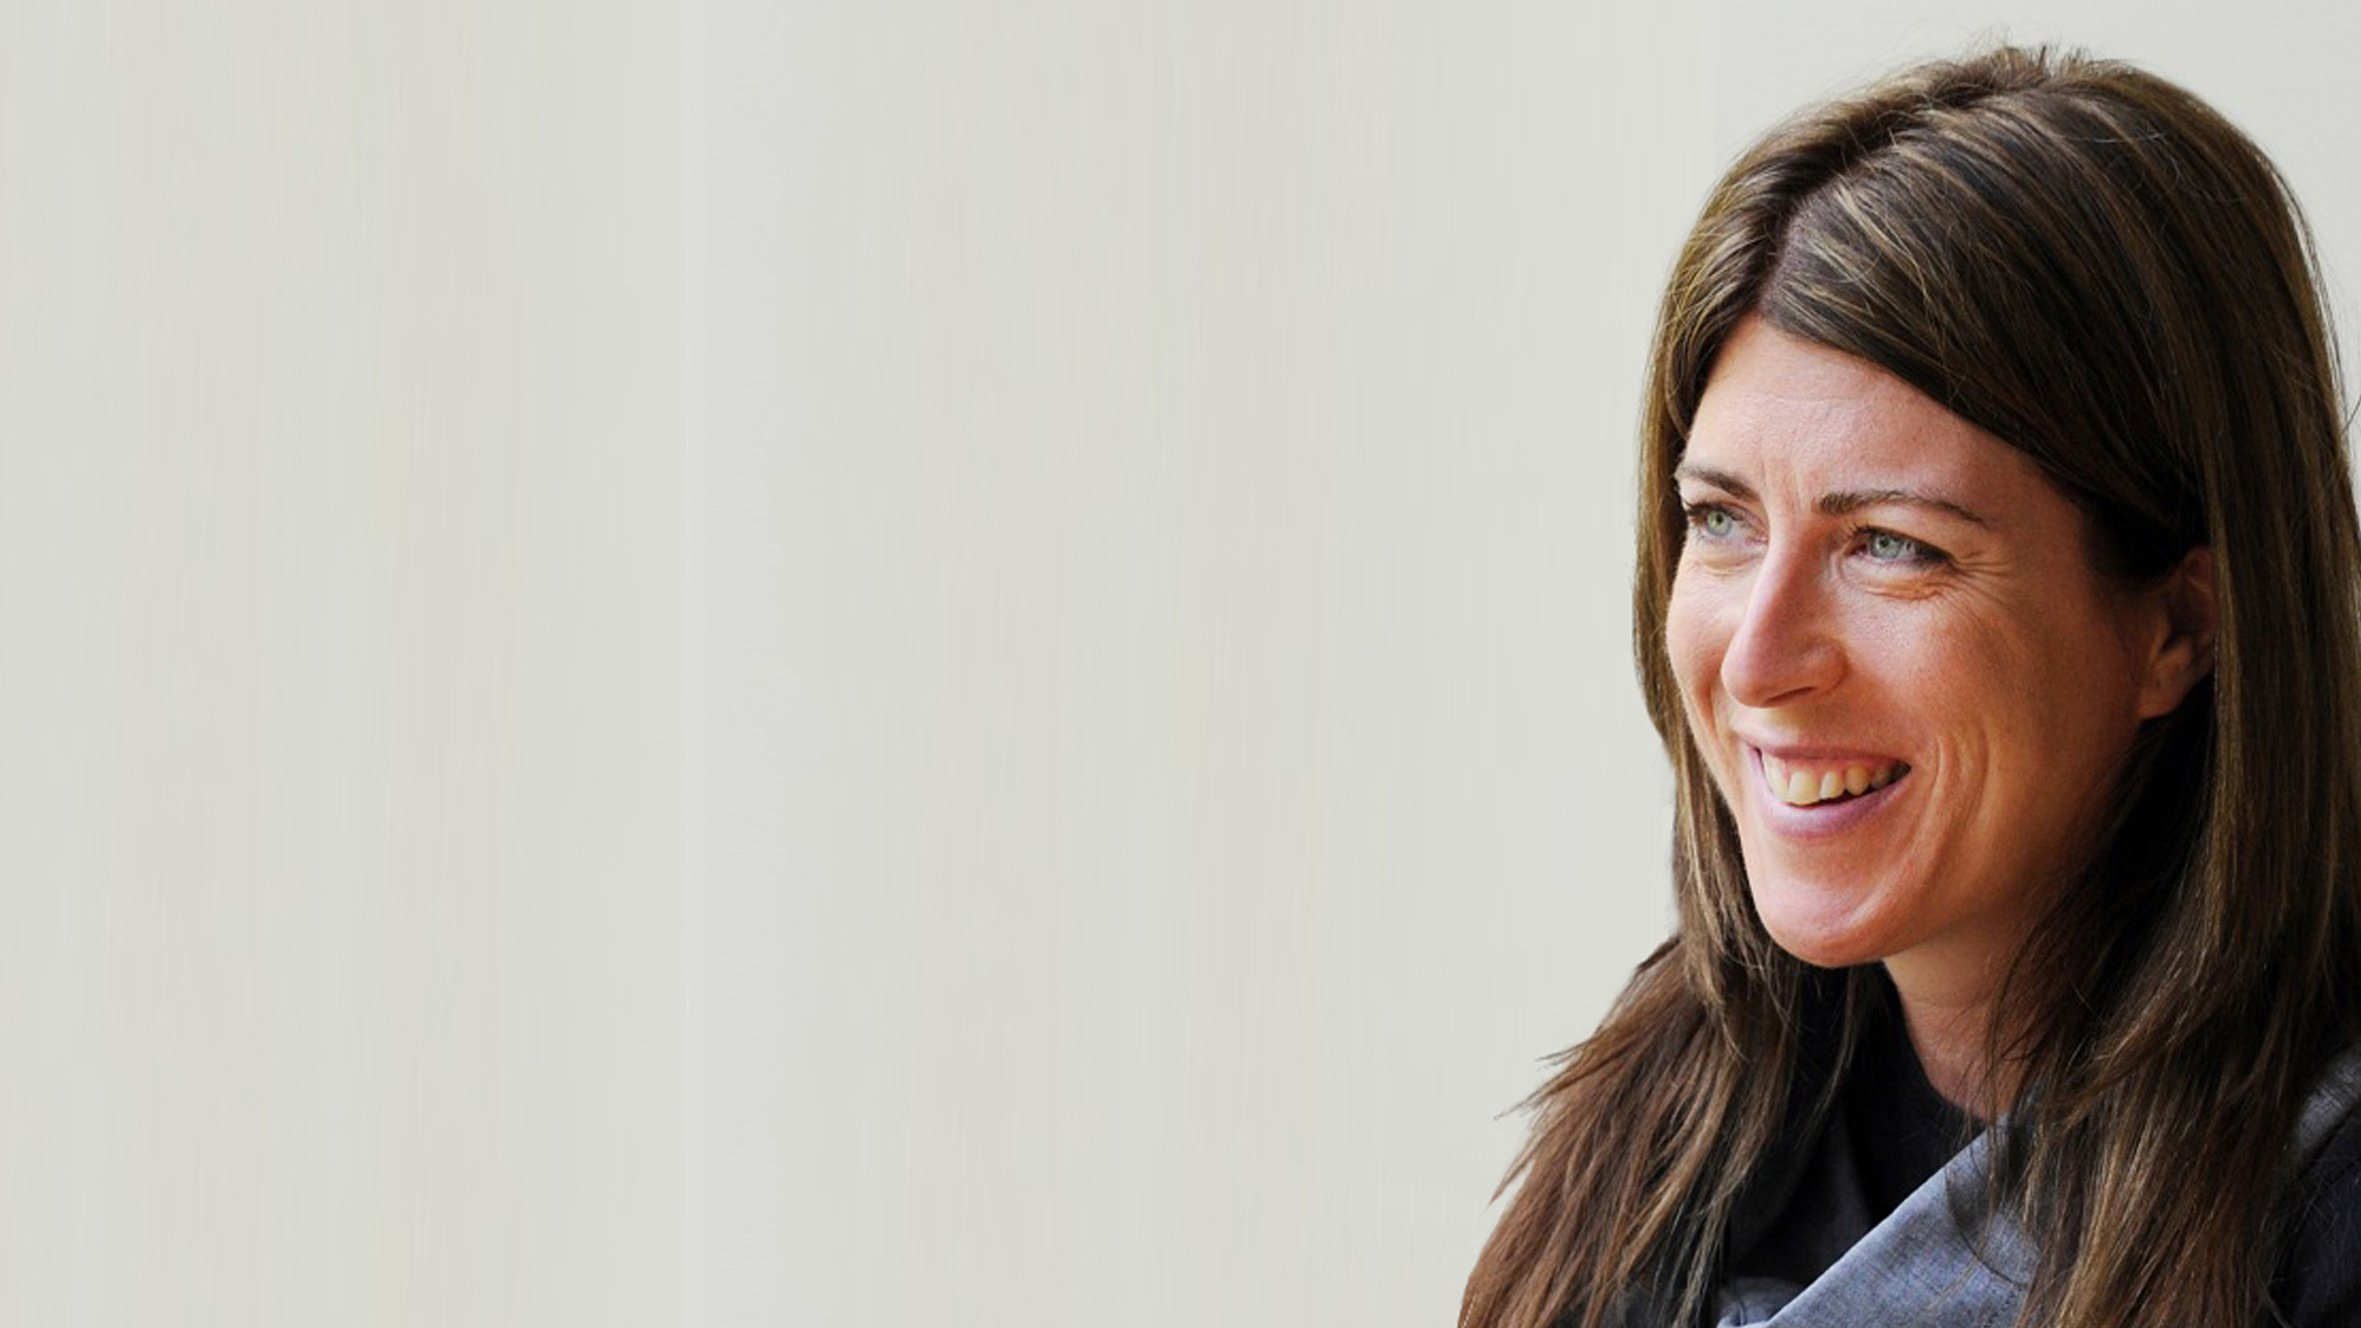 Professor Sharon Baurley, chair of the Burberry Material Futures Research Group